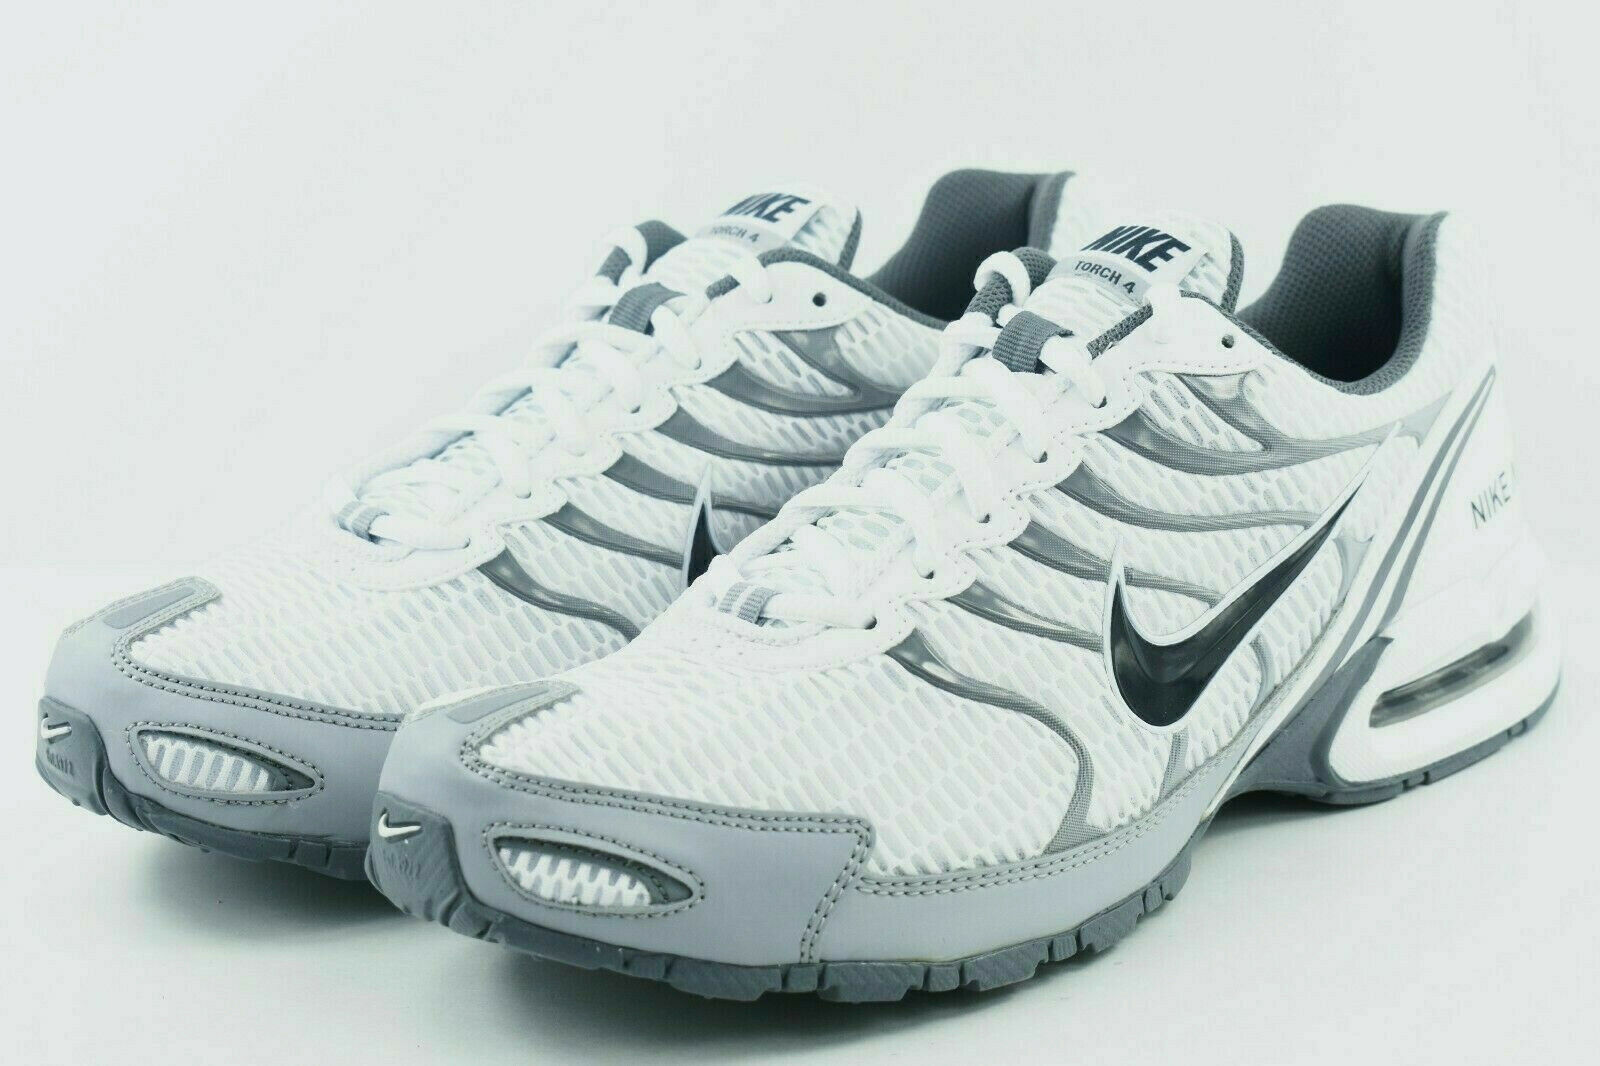 NIB NIKE 343846 100 MEN AIR MAX TORCH 4 WHITE ANTHRACITE SHOES SELECT SIZE  100